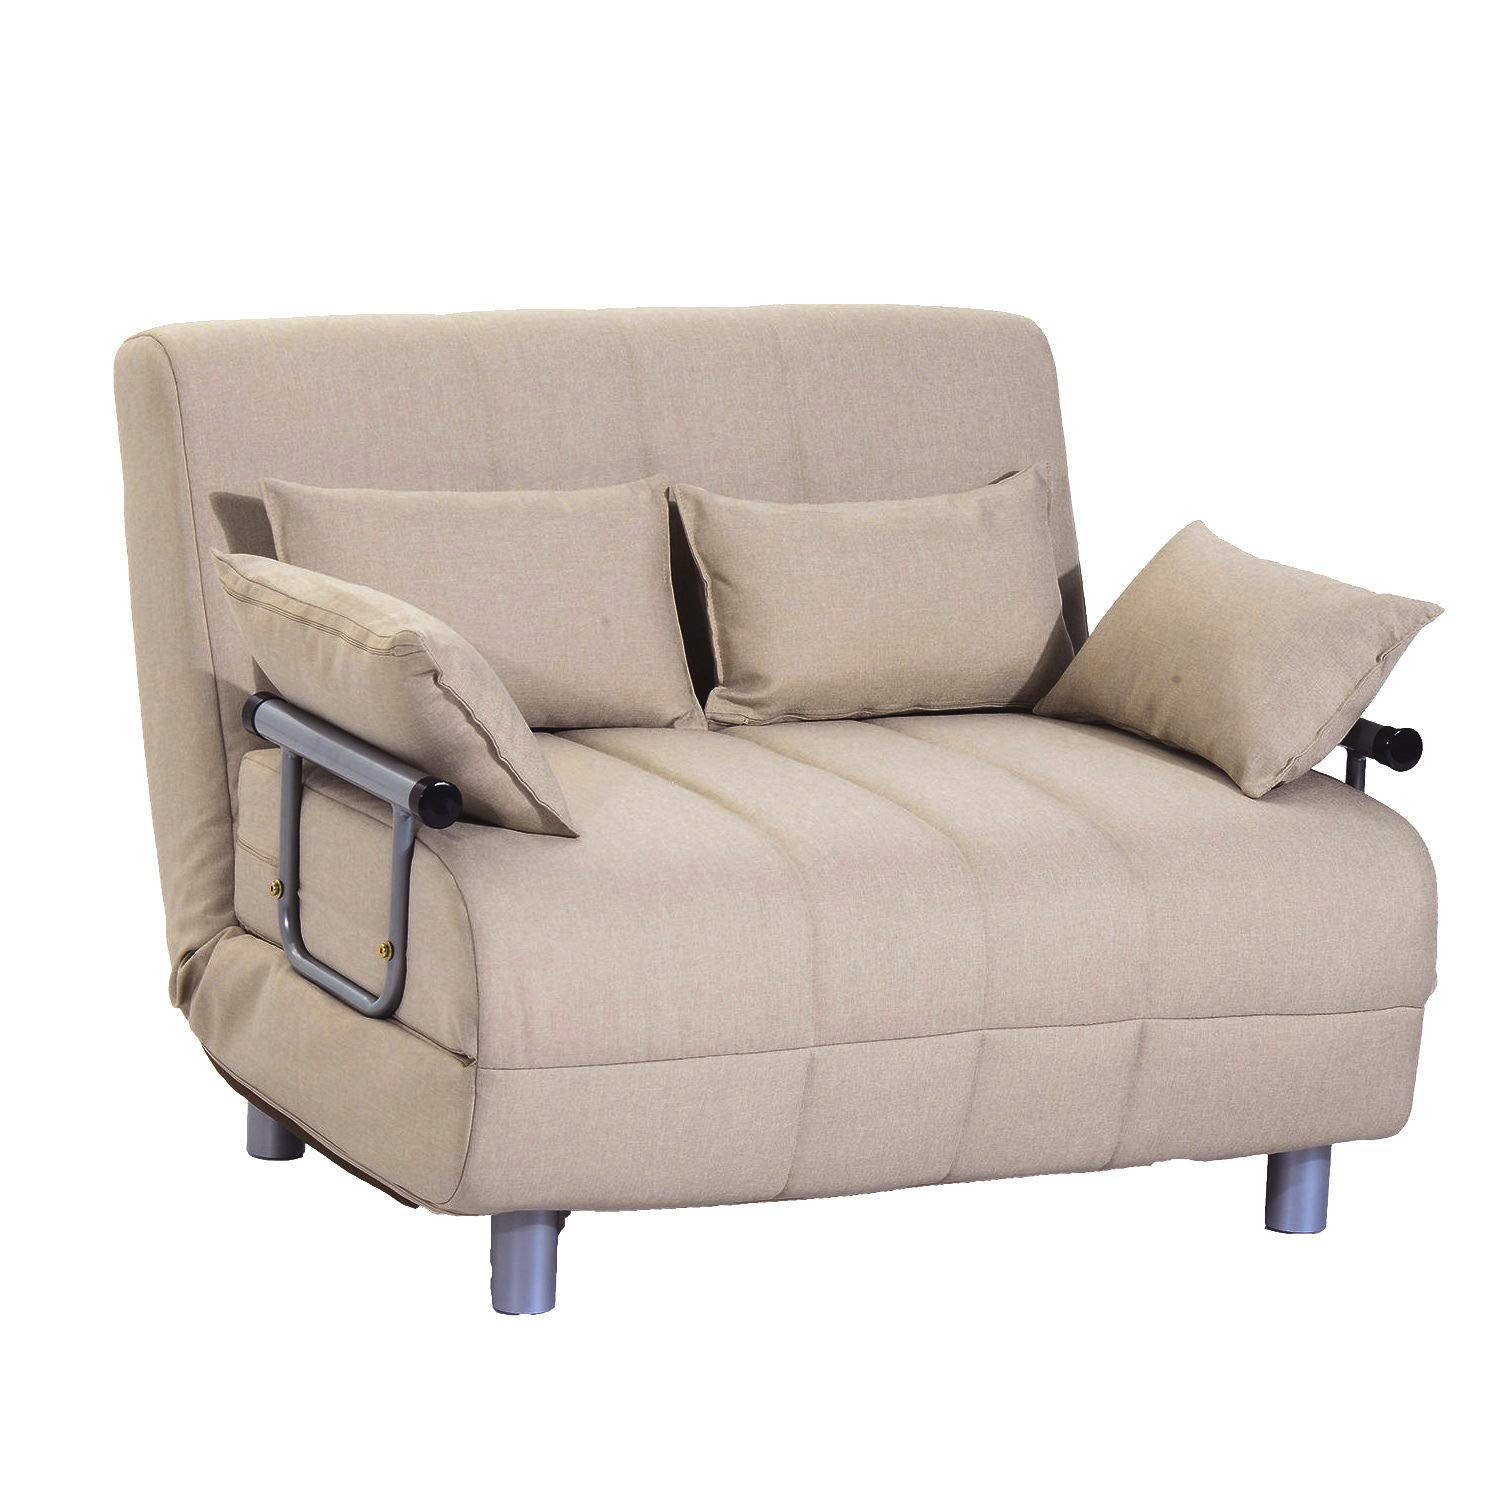 HOMCOM 3-in-1 Convertible Chair Sofa Bed Lounger Folding Bed with Adjustable Backrest and 4 Pillows Beige